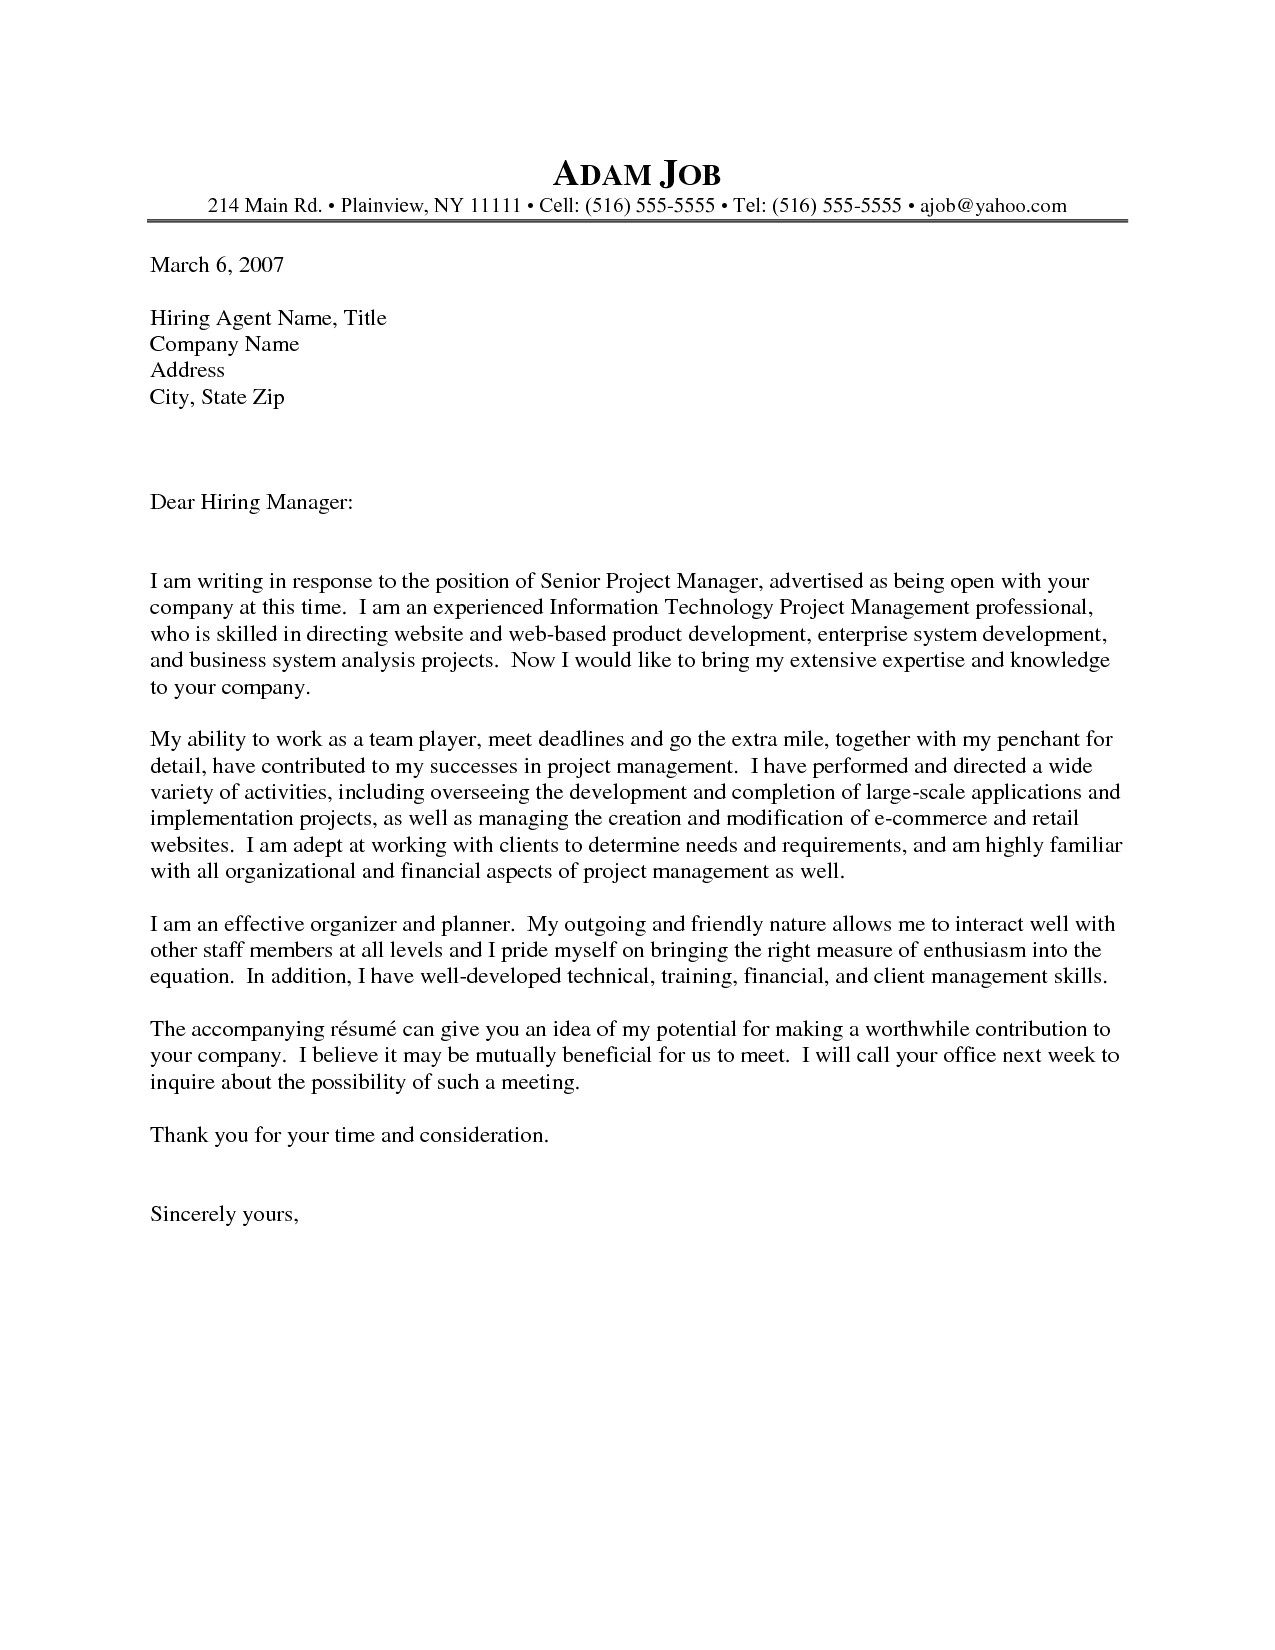 sample cover letter for it project manager position